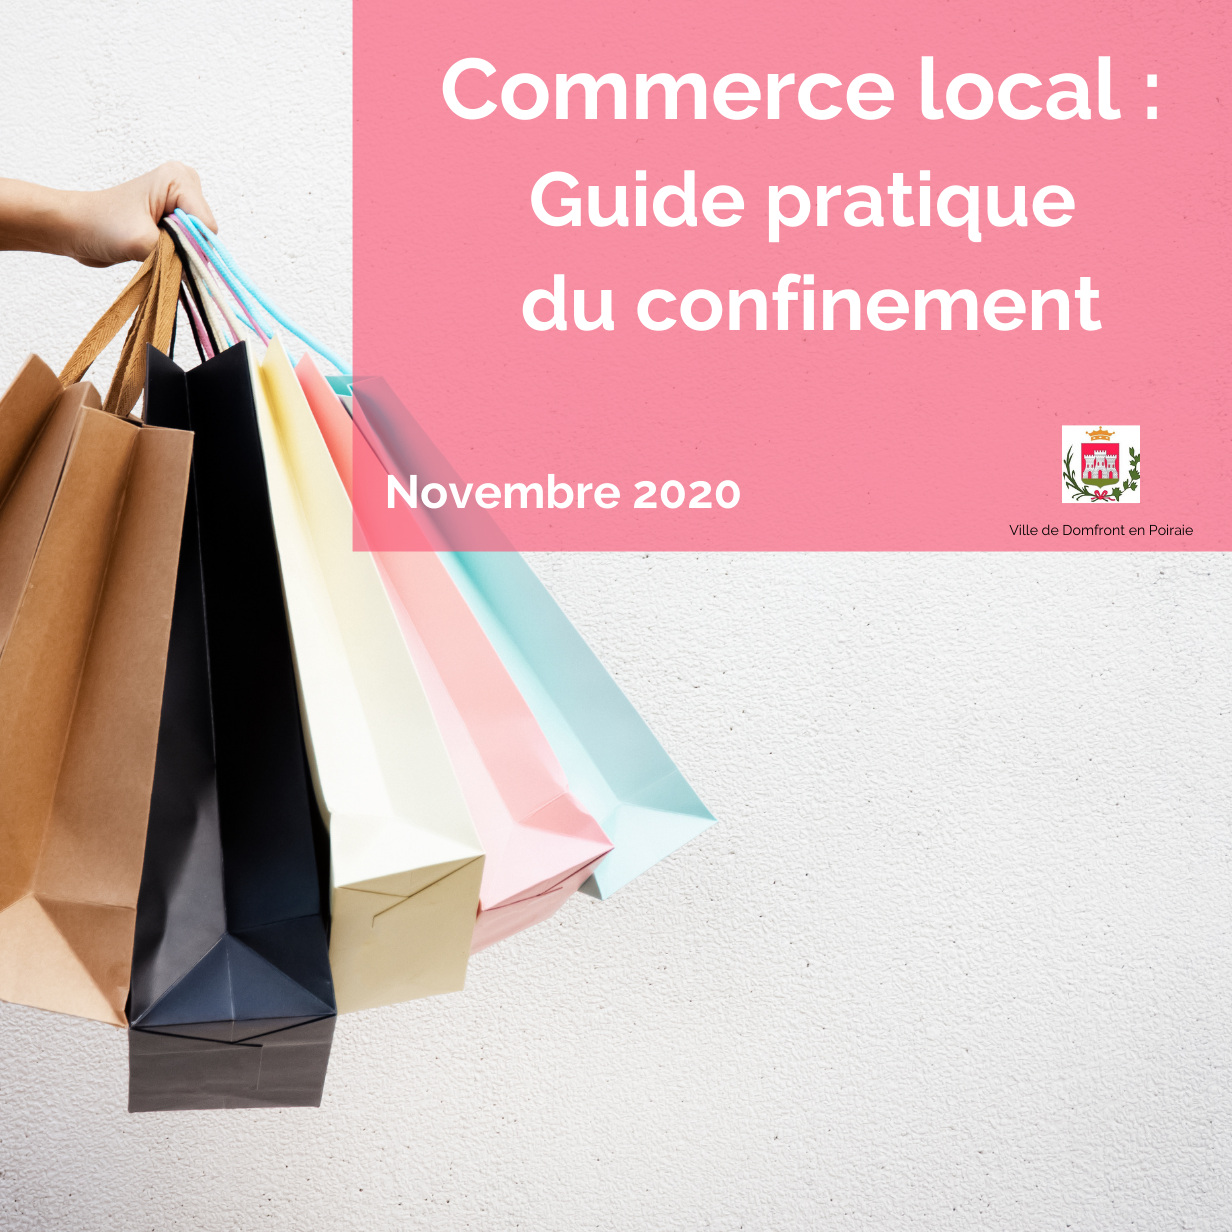 Commerce local _ Guide pratique du confinement Novembre 2020